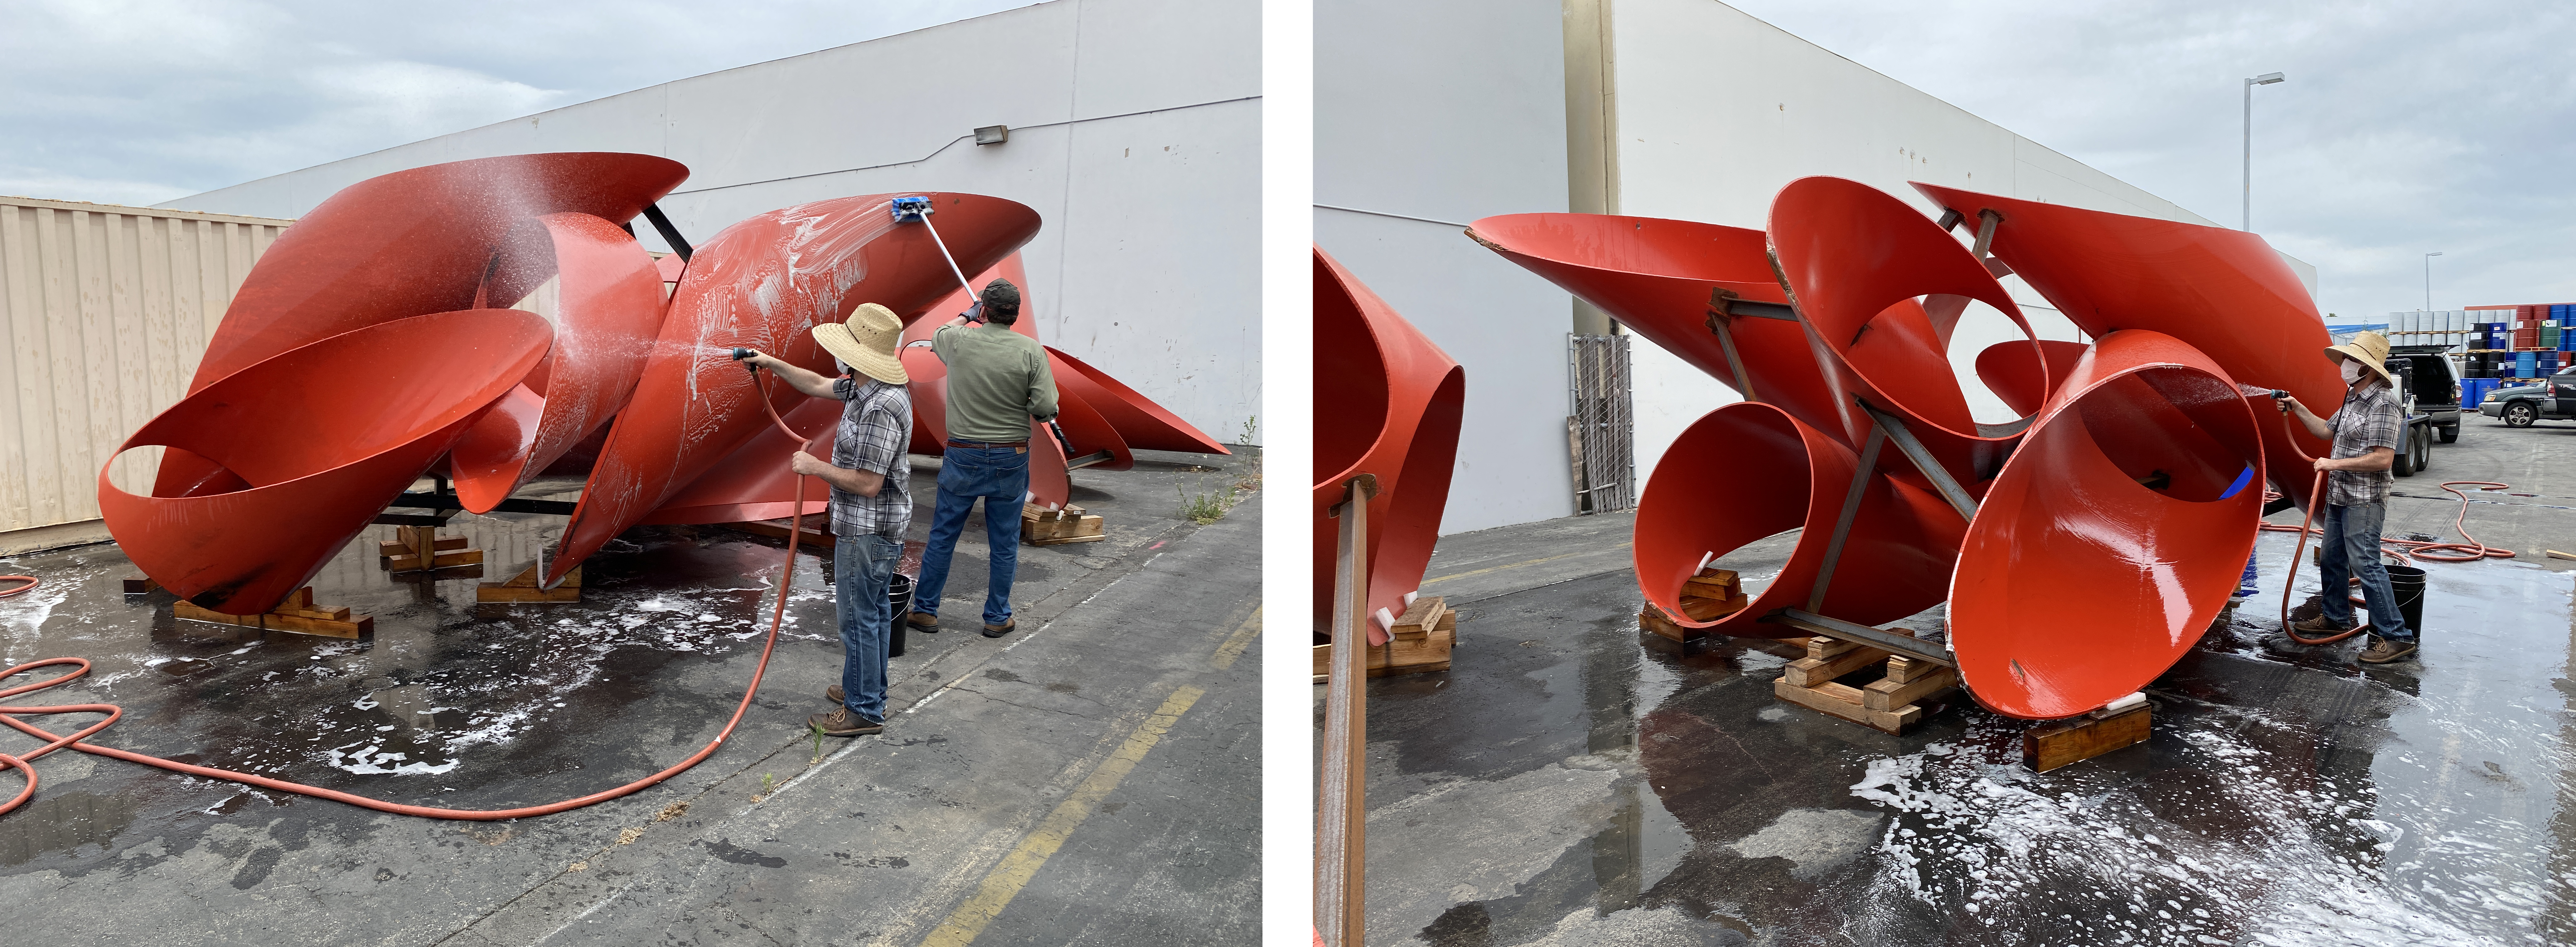 Both: Alexander Liberman, Phoenix, 1974, Los Angeles County Museum of Art, © The Alexander Liberman Trust. John Hirx and Larry Rubin, Sr. Collections Management Technician, scrubbing and rinsing Phoenix to prepare for shrink wrapping, photos courtesy of Emory Marshall